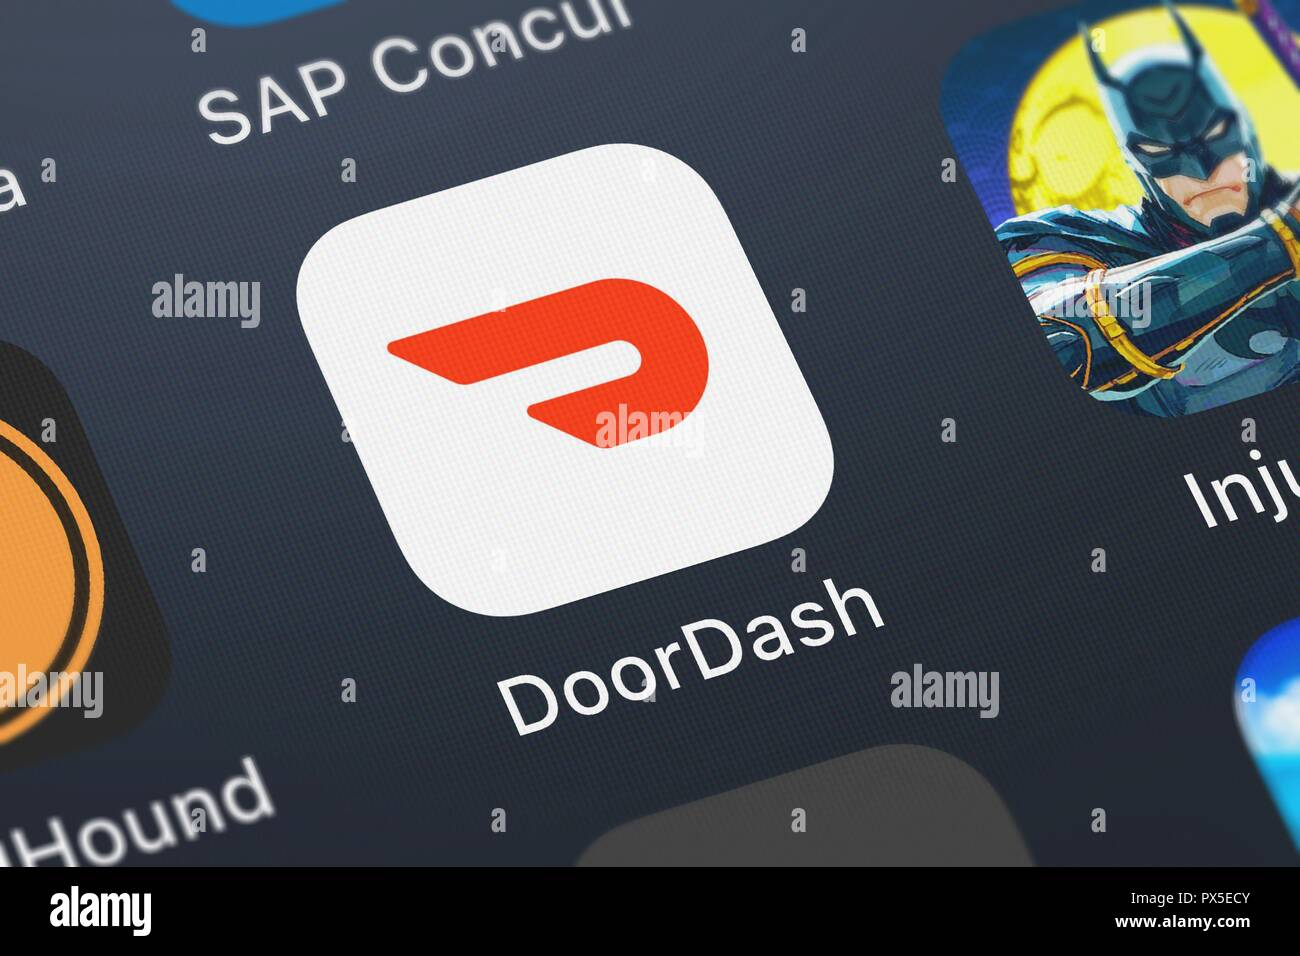 London, United Kingdom - October 19, 2018: Close-up of the DoorDash - Order Food Delivery icon from DoorDash, Inc. on an iPhone. Stock Photo